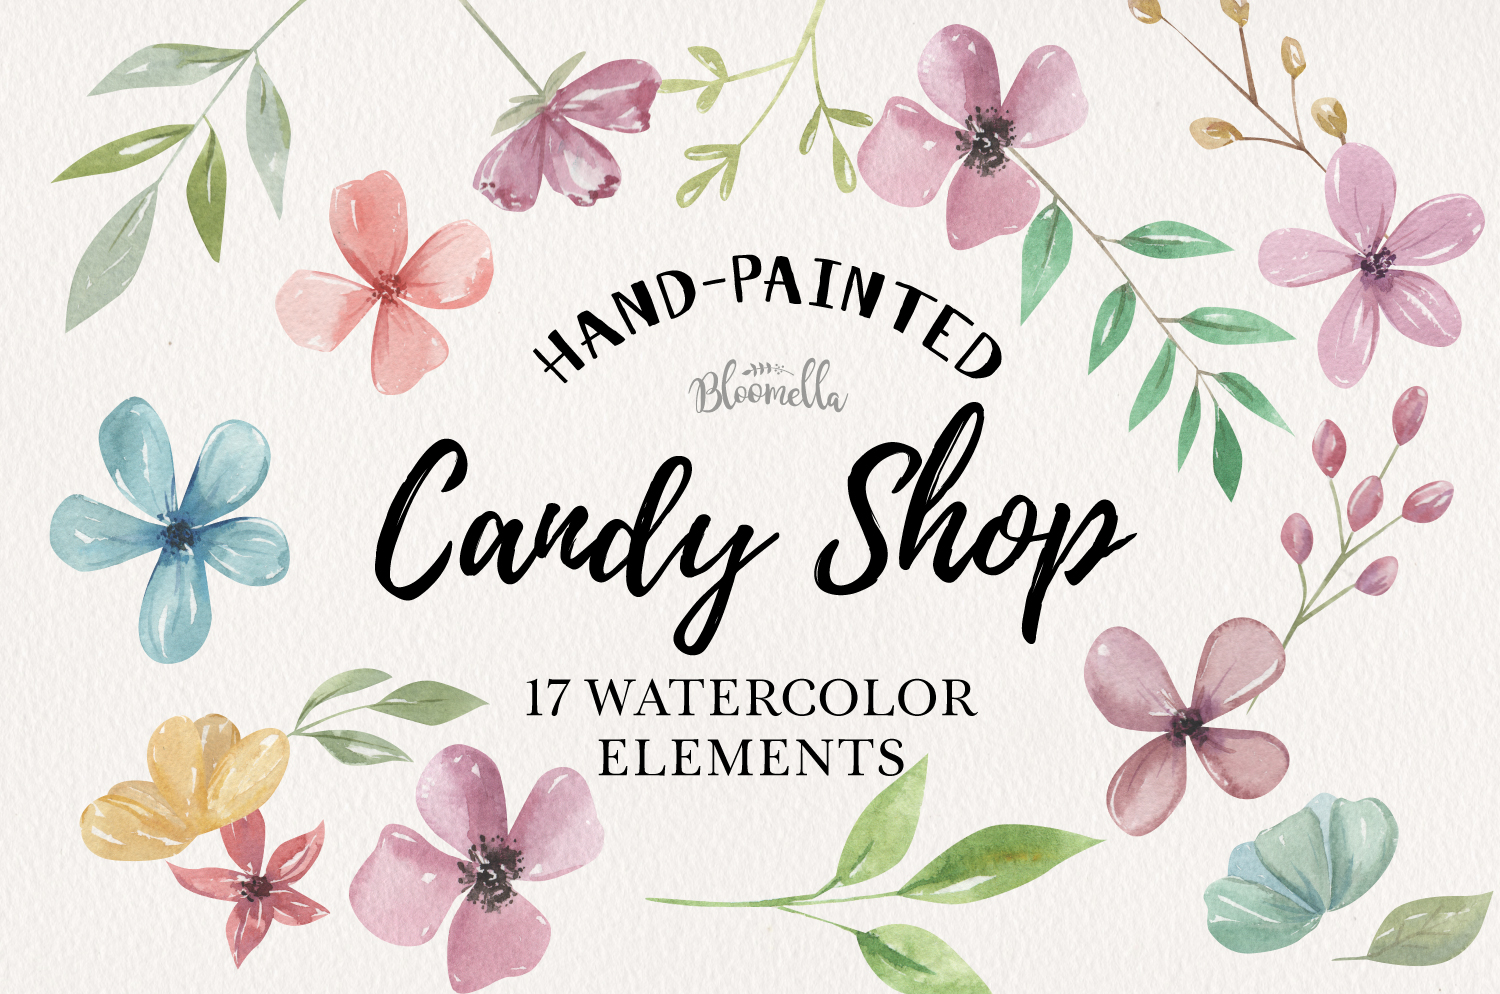 Candy Shop Watercolor Flowers 17 Elements Florals Leaves example image 1